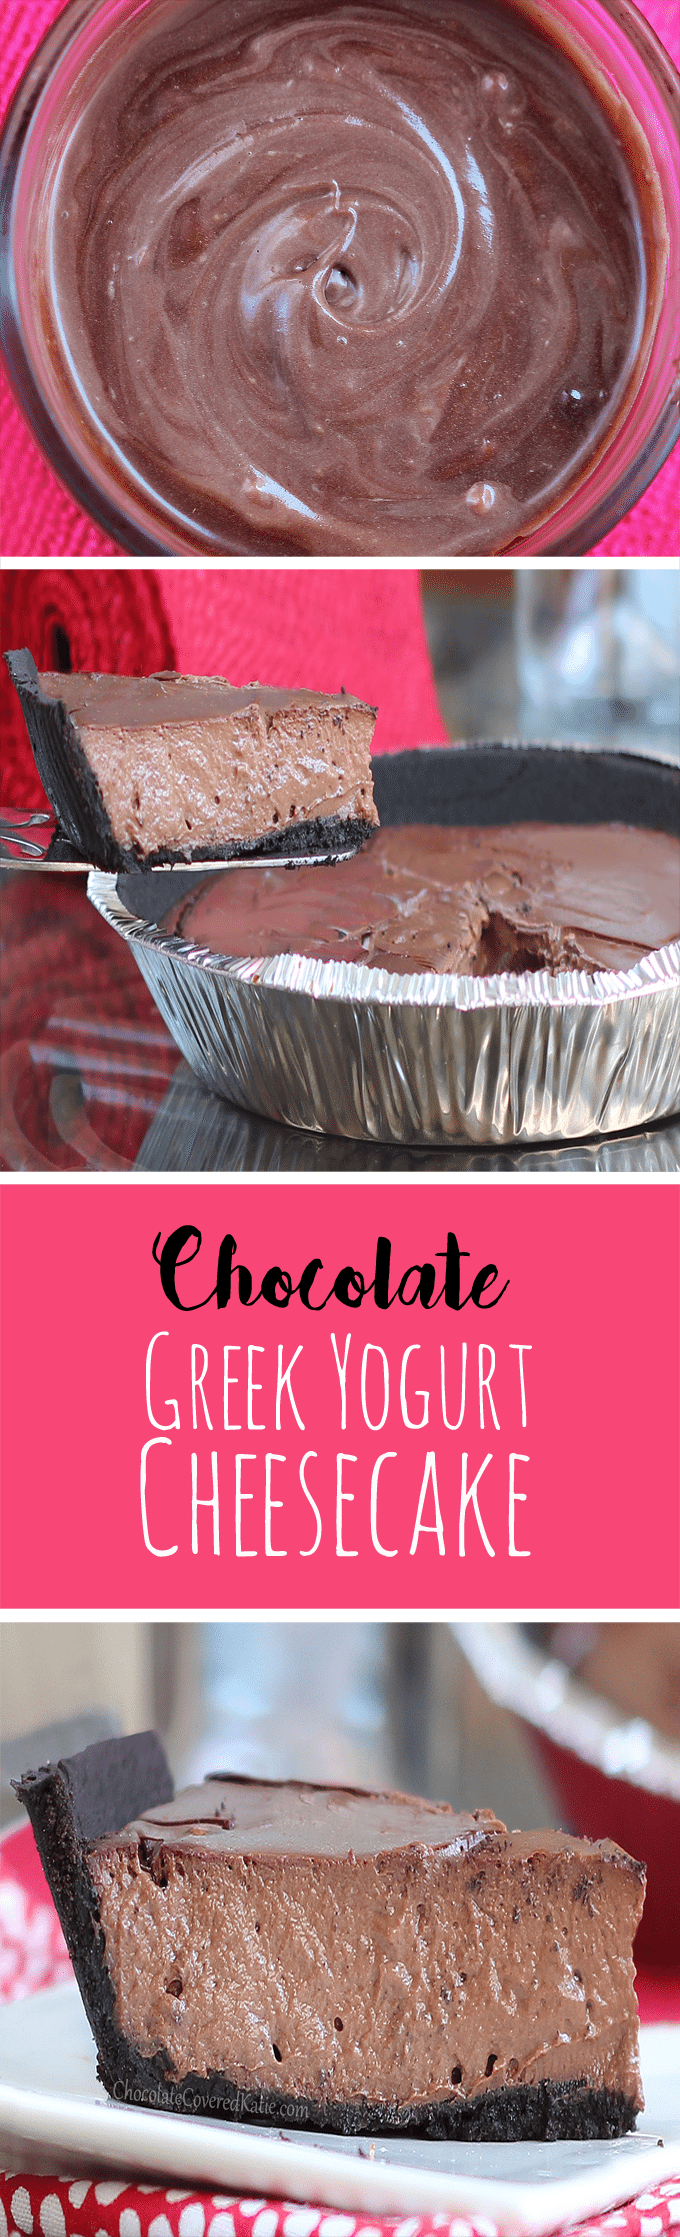 Chocolate Greek Yogurt Pie - Ingredients: 2 cups greek yogurt, 1/2 cup cocoa powder, 1 1/2 tsp vanilla extract, 1/4 cup... Full recipe: @choccoveredkt https://chocolatecoveredkatie.com/2013/07/26/chocolate-greek-yogurt-pie/